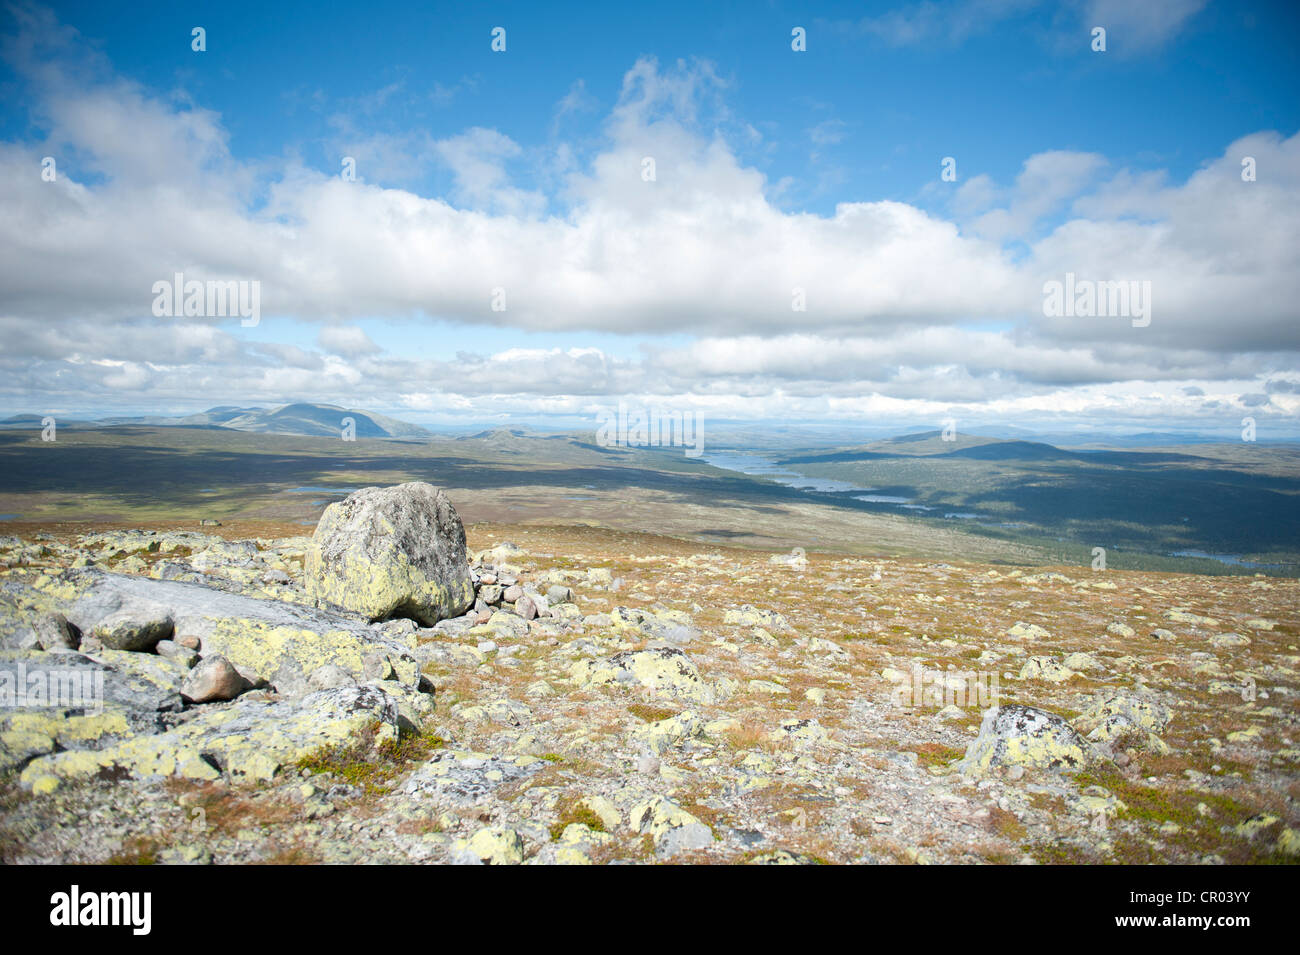 Panoramic view across moutnains, Fjaell and lakes from the summit of Mt Storvaetteshågna, Langfjaellet Nature - Stock Image